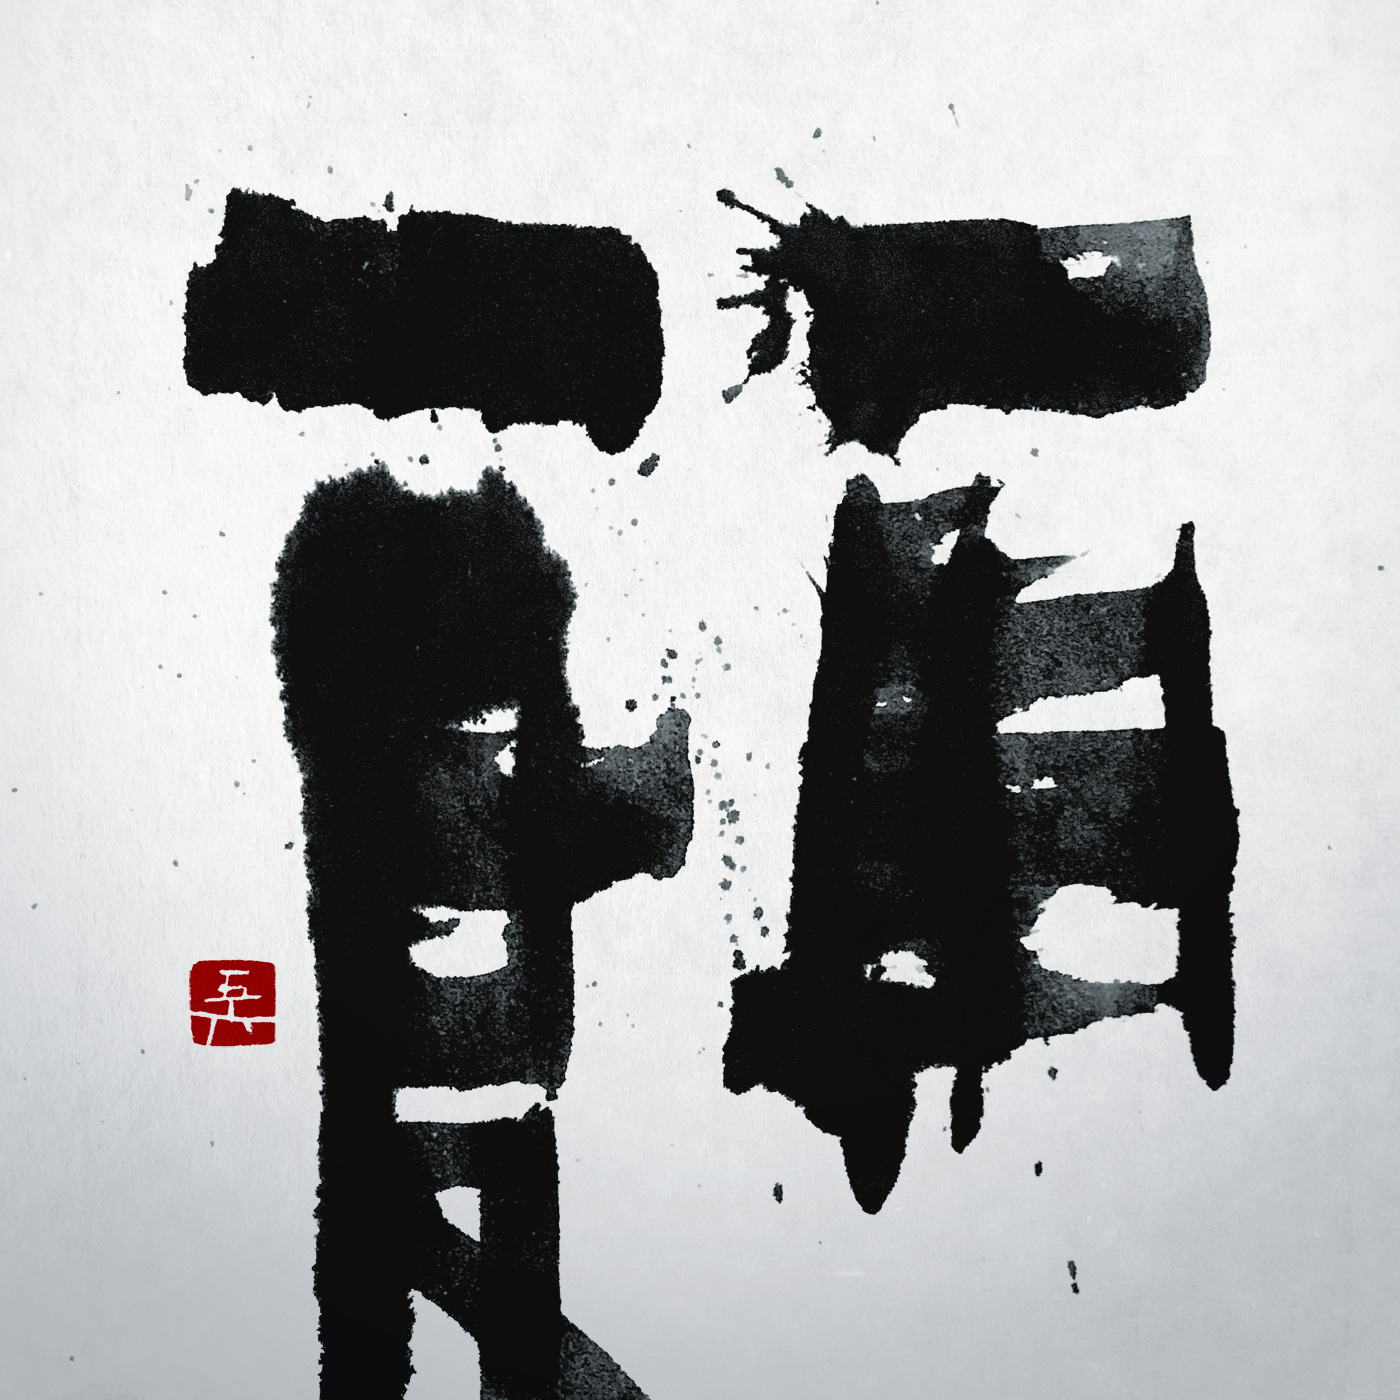 一期一度 | now or never 書道作品 japaneseart japanese calligraphy 書家 田川悟郎 Goroh Tagawa